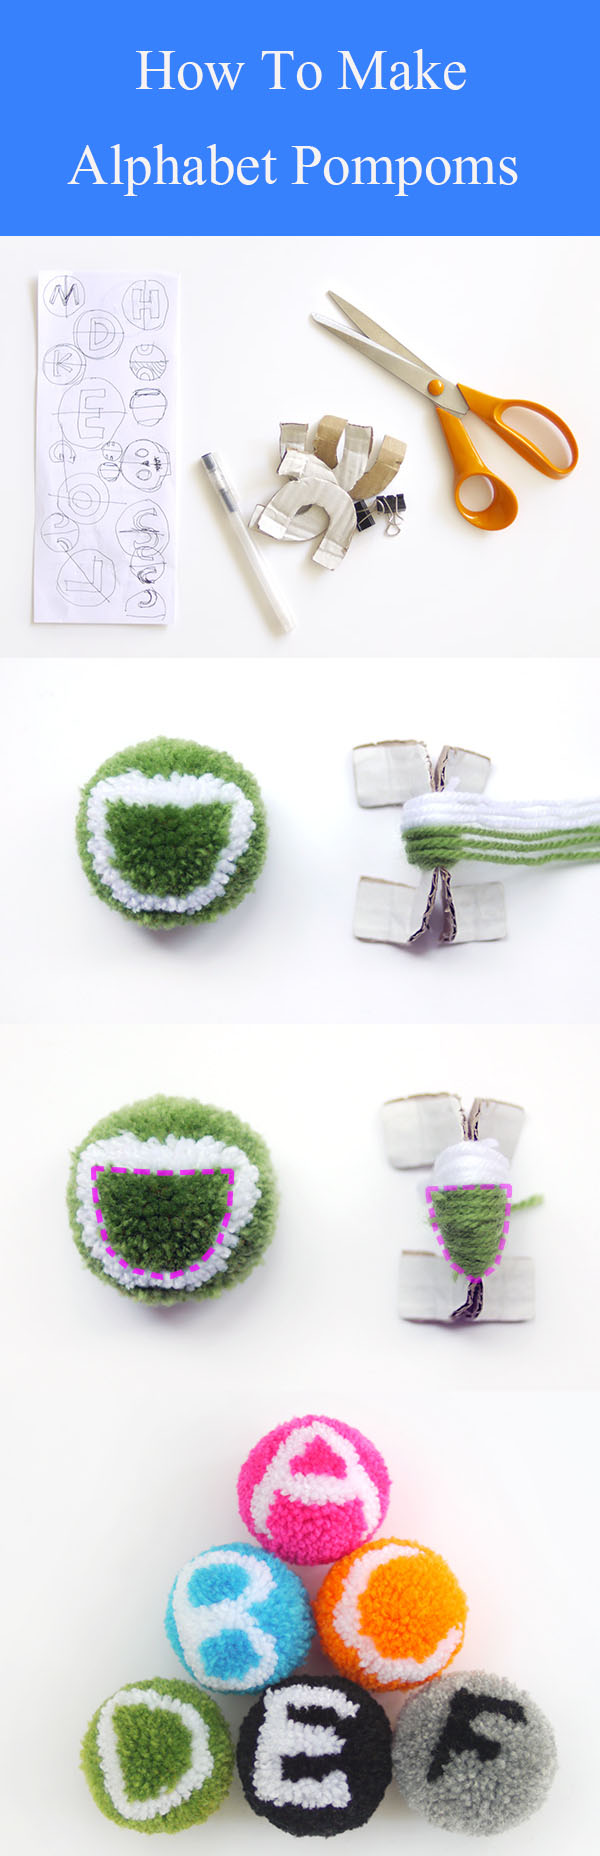 DIY Alphabet Pompoms